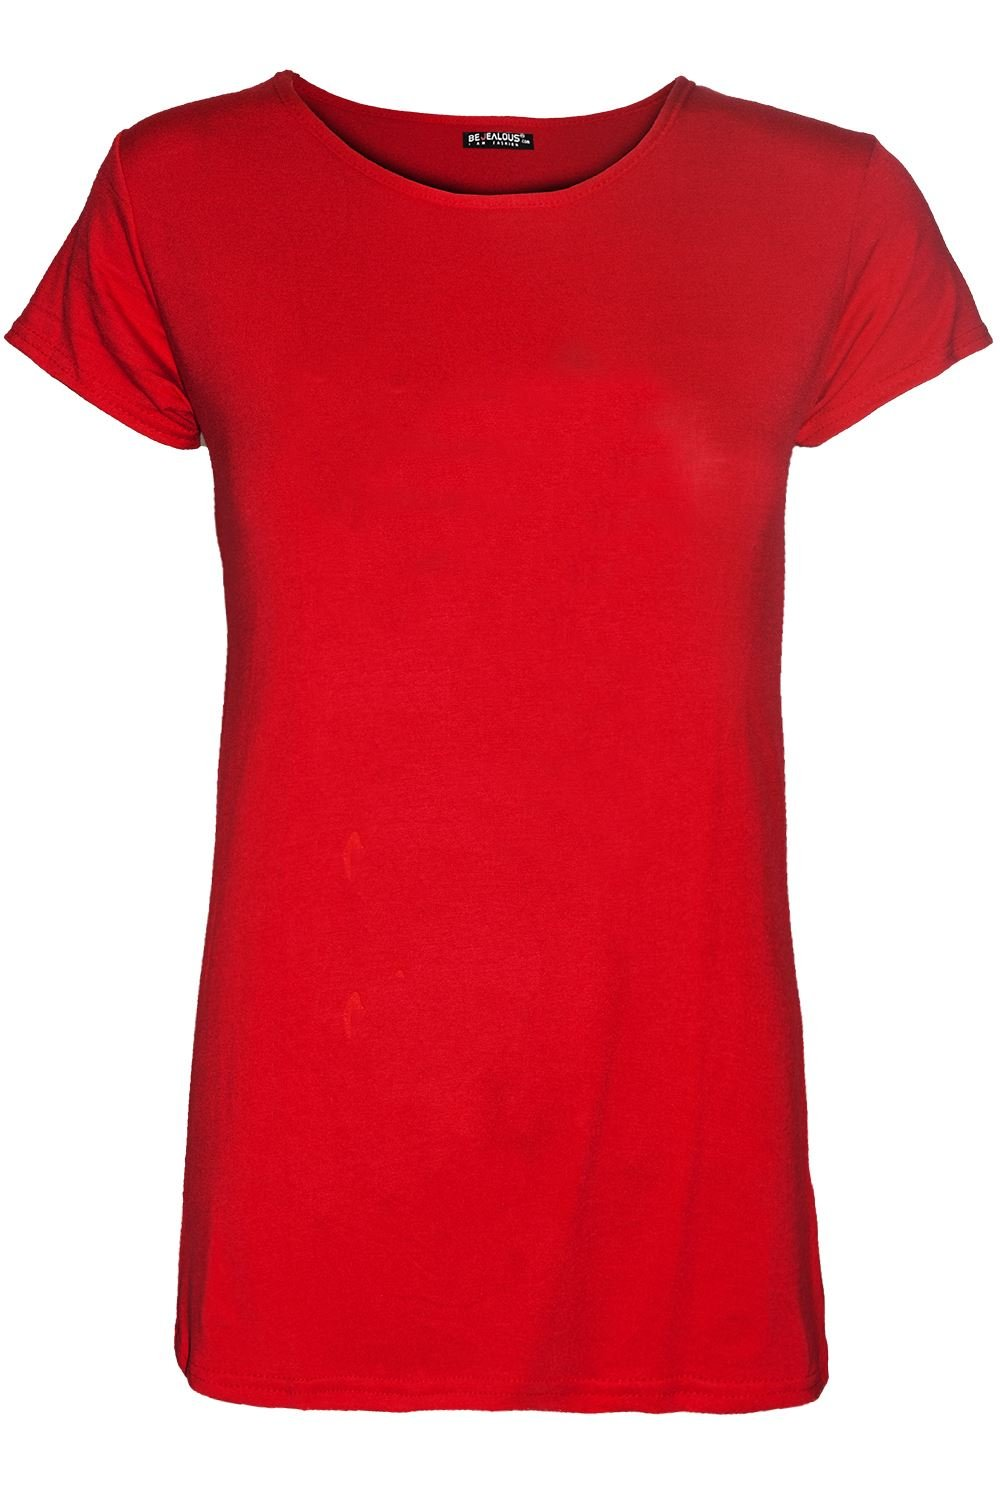 Be Jealous Womens Ladies Plain Casual Cap Sleeve Top Stretchy Basic Jersey Tee T Shirt Top UK Plus Size 8-22